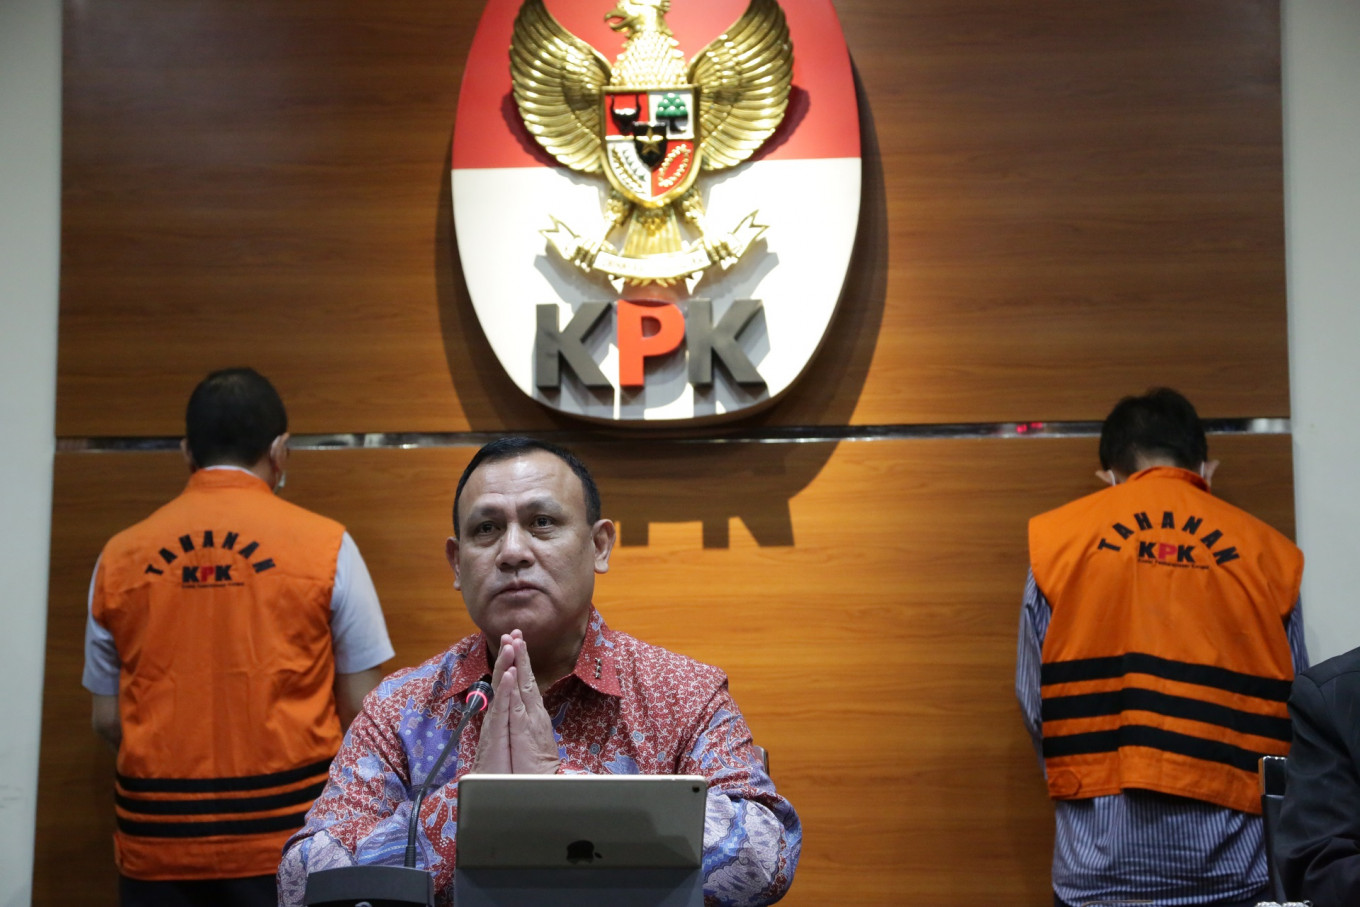 Watchdogs' grim report says KPK has 'lost public trust' in six months under Firli